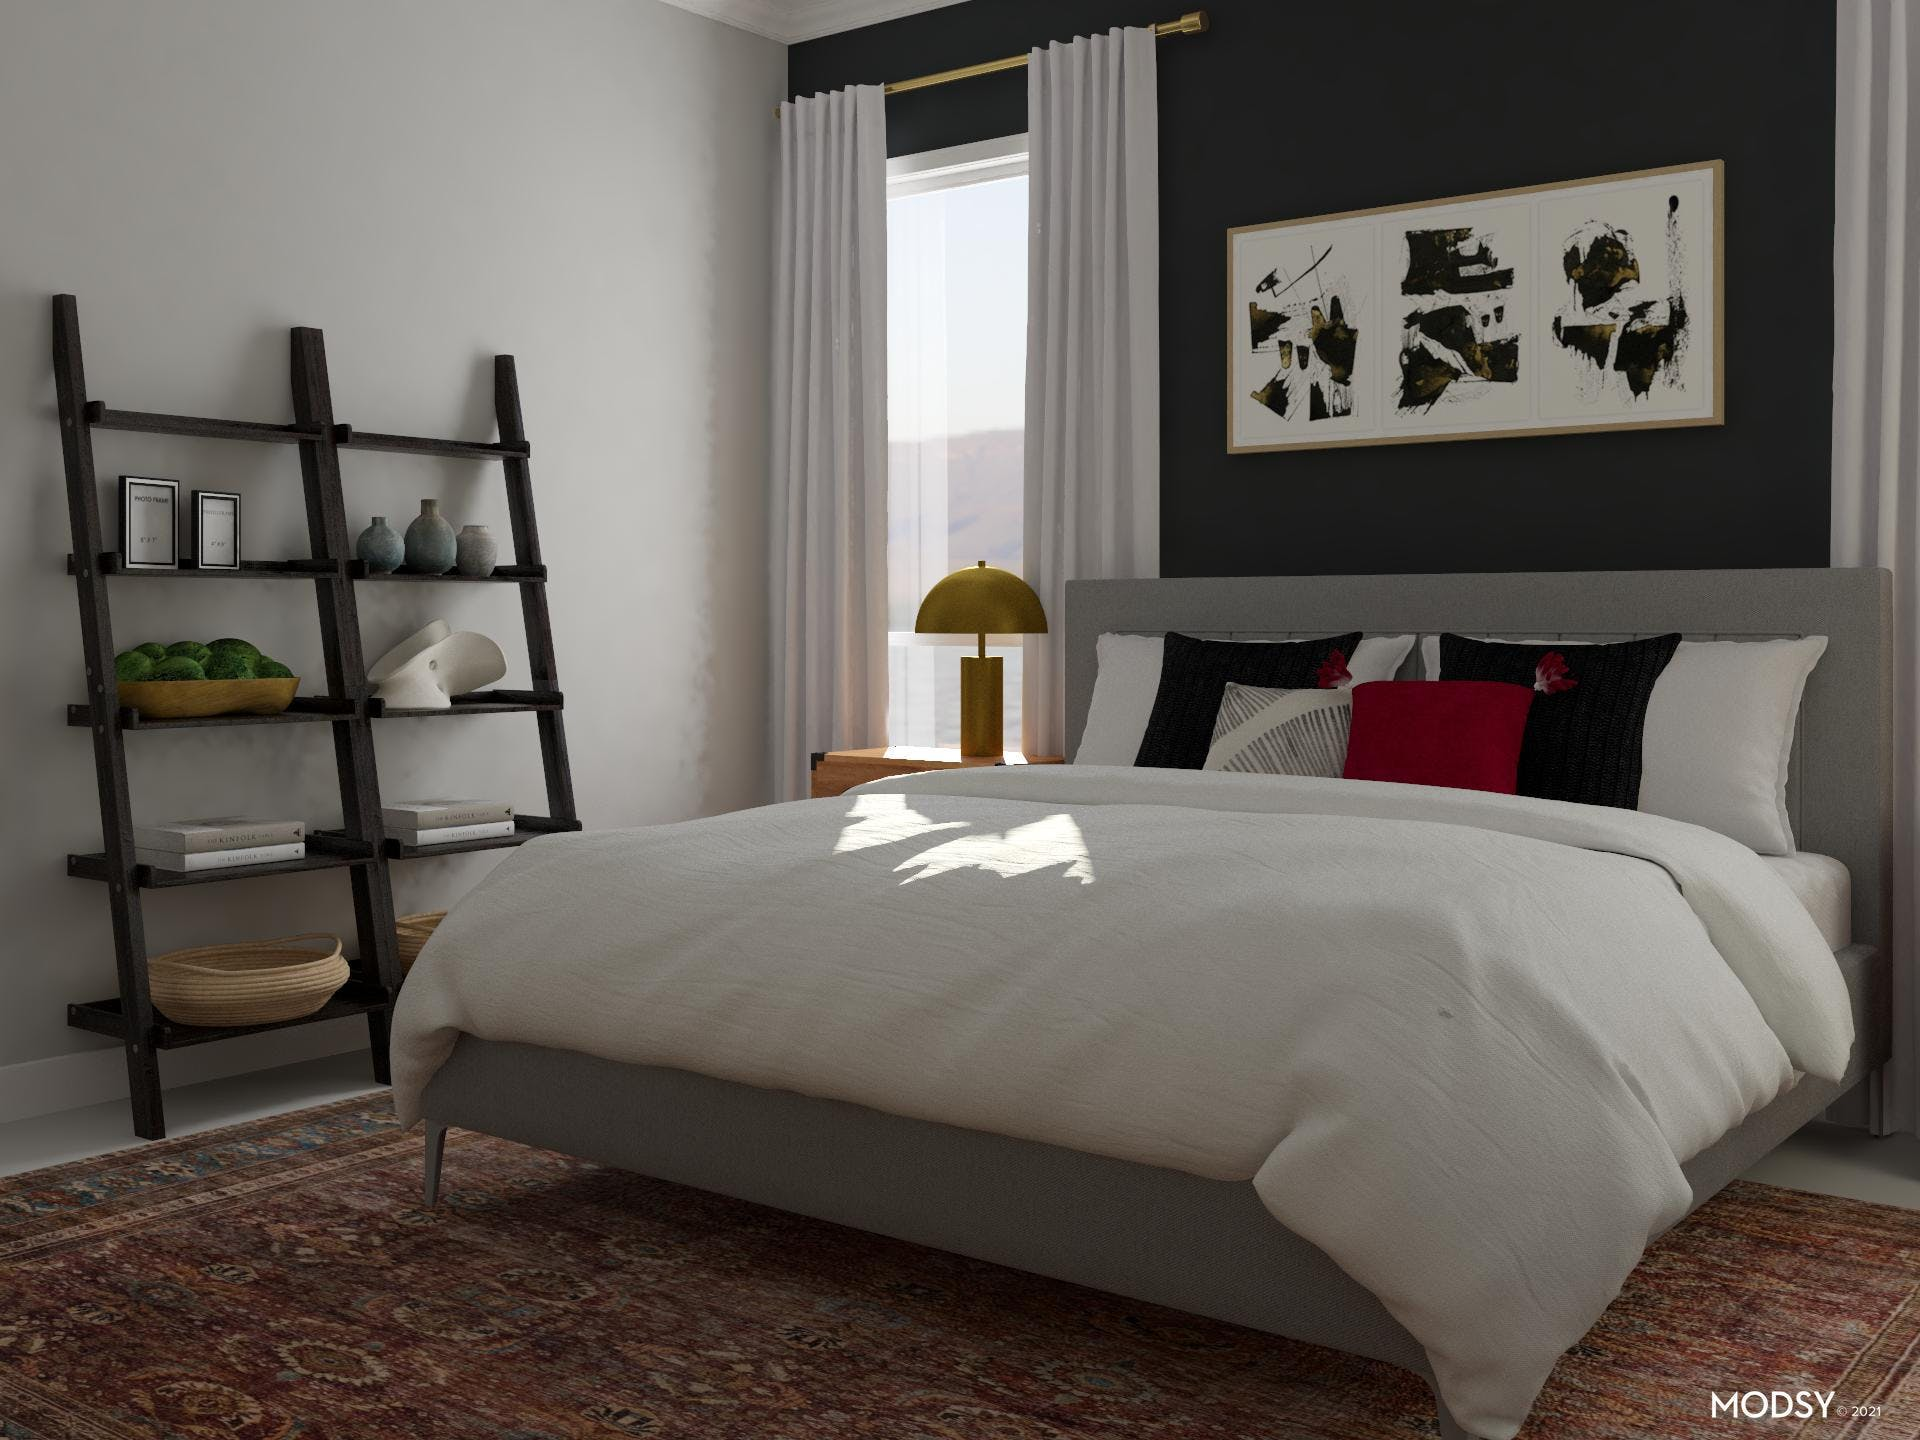 Black, White And Red: Bedroom Suite